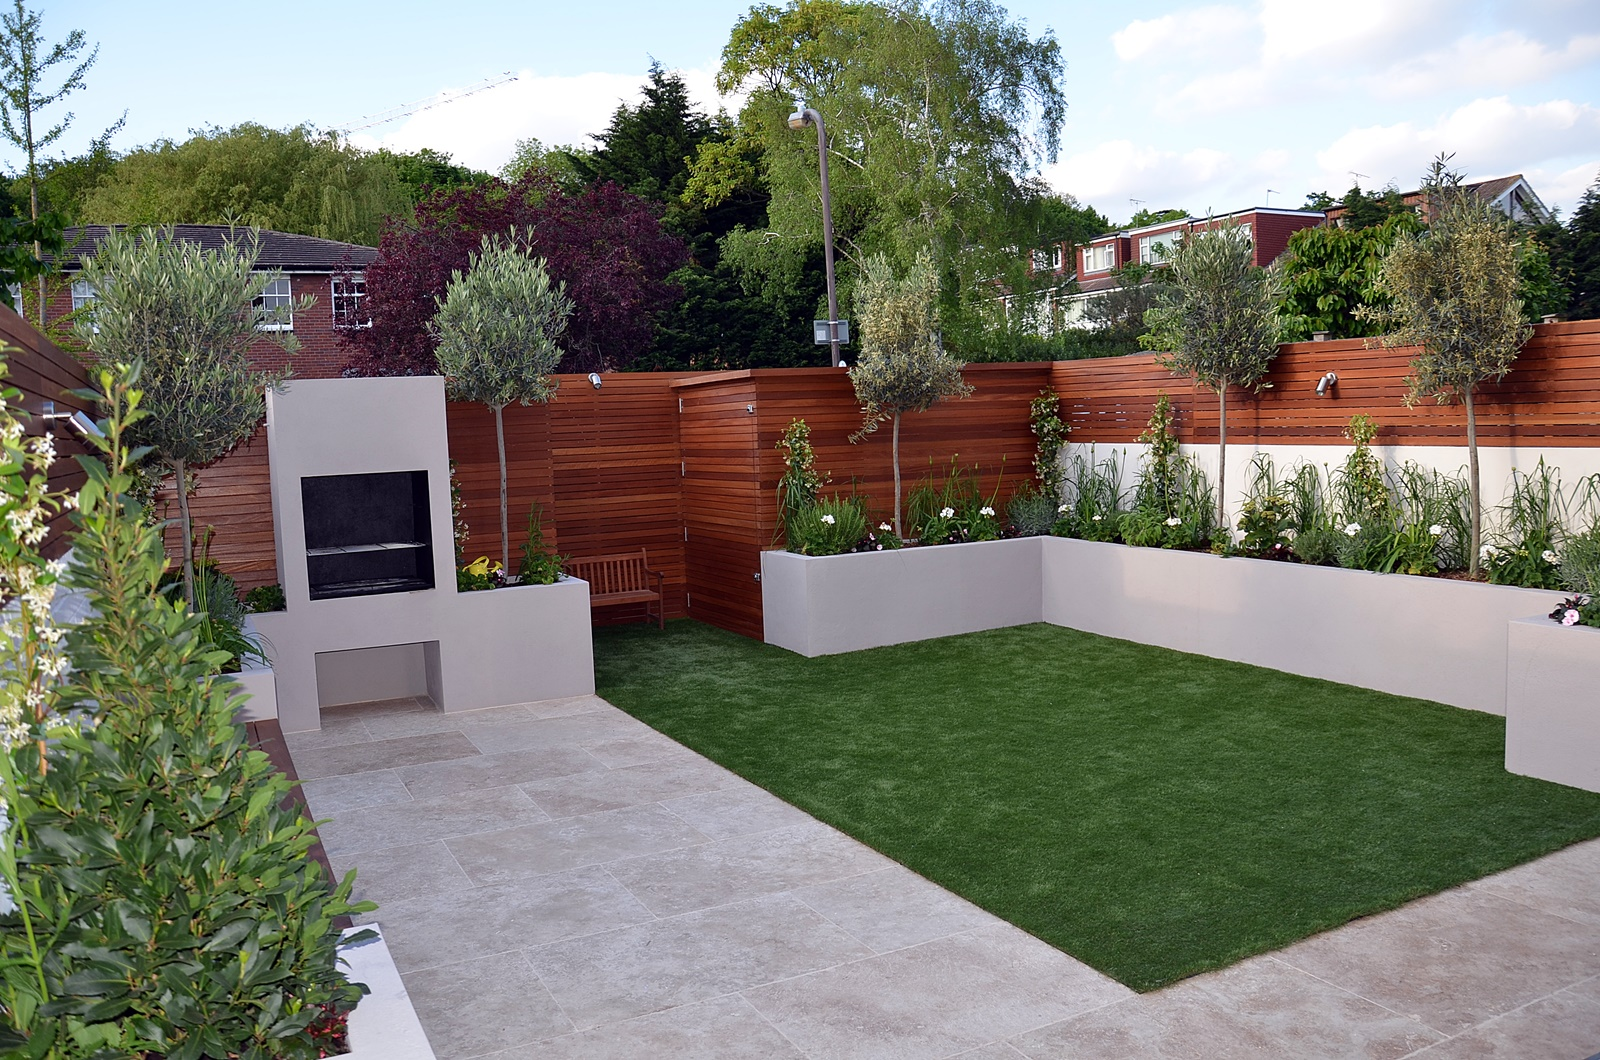 Modern garden design fulham chelsea clapham battersea for Garden and design